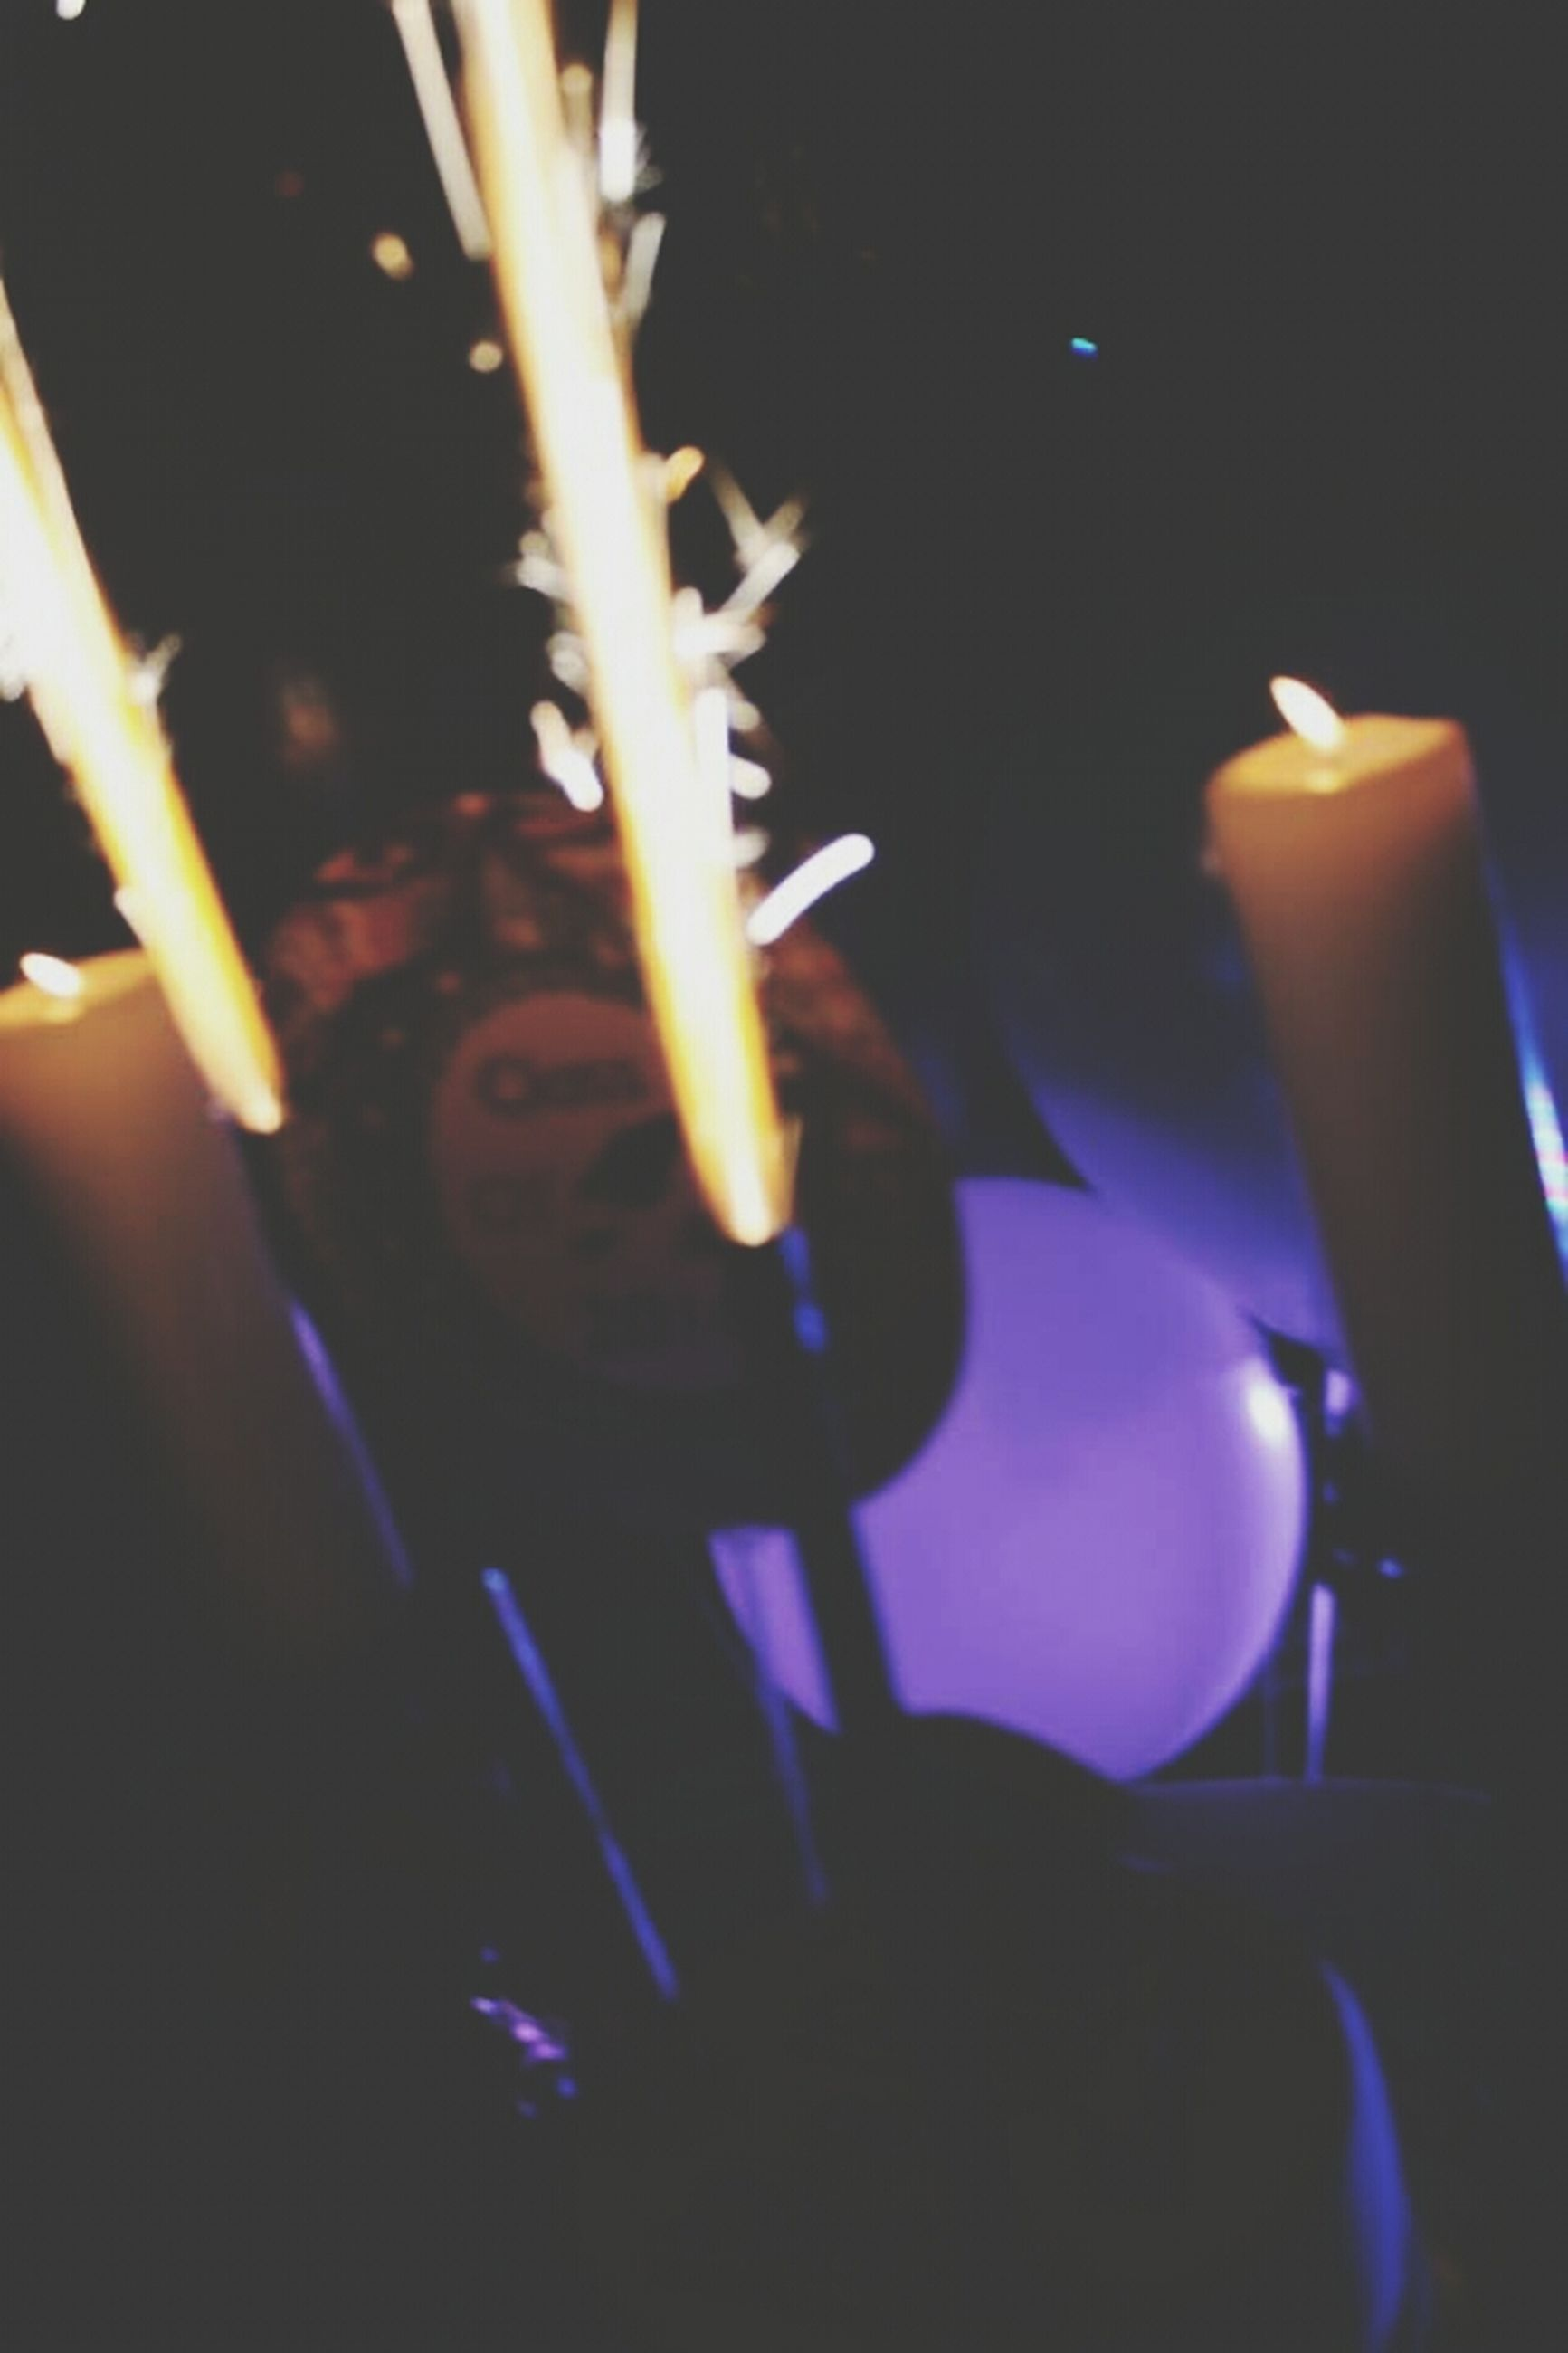 illuminated, indoors, burning, flame, glowing, fire - natural phenomenon, night, candle, heat - temperature, light - natural phenomenon, close-up, lighting equipment, lit, arts culture and entertainment, dark, celebration, no people, fire, musical instrument, decoration